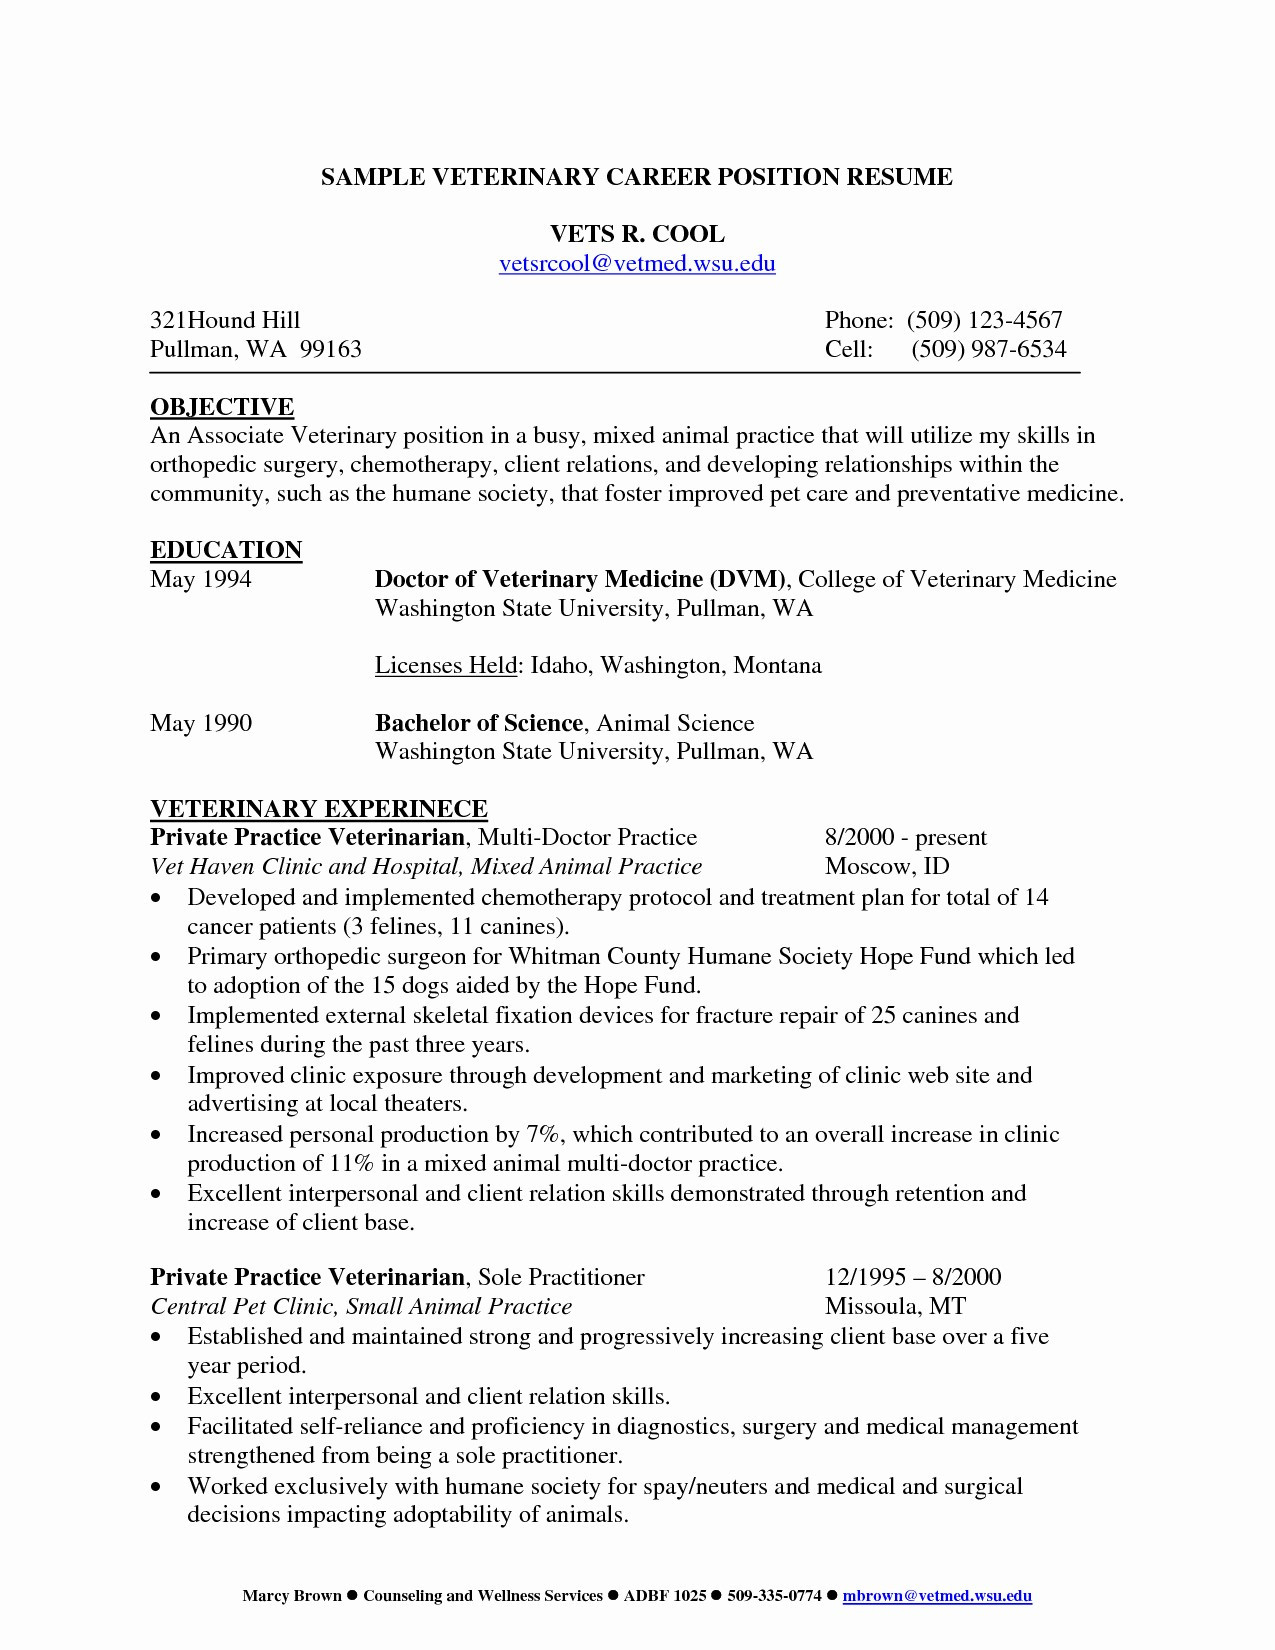 Resume Template Science - Counselling Letter Template 2018 Professional Pharmacy Tech Resume